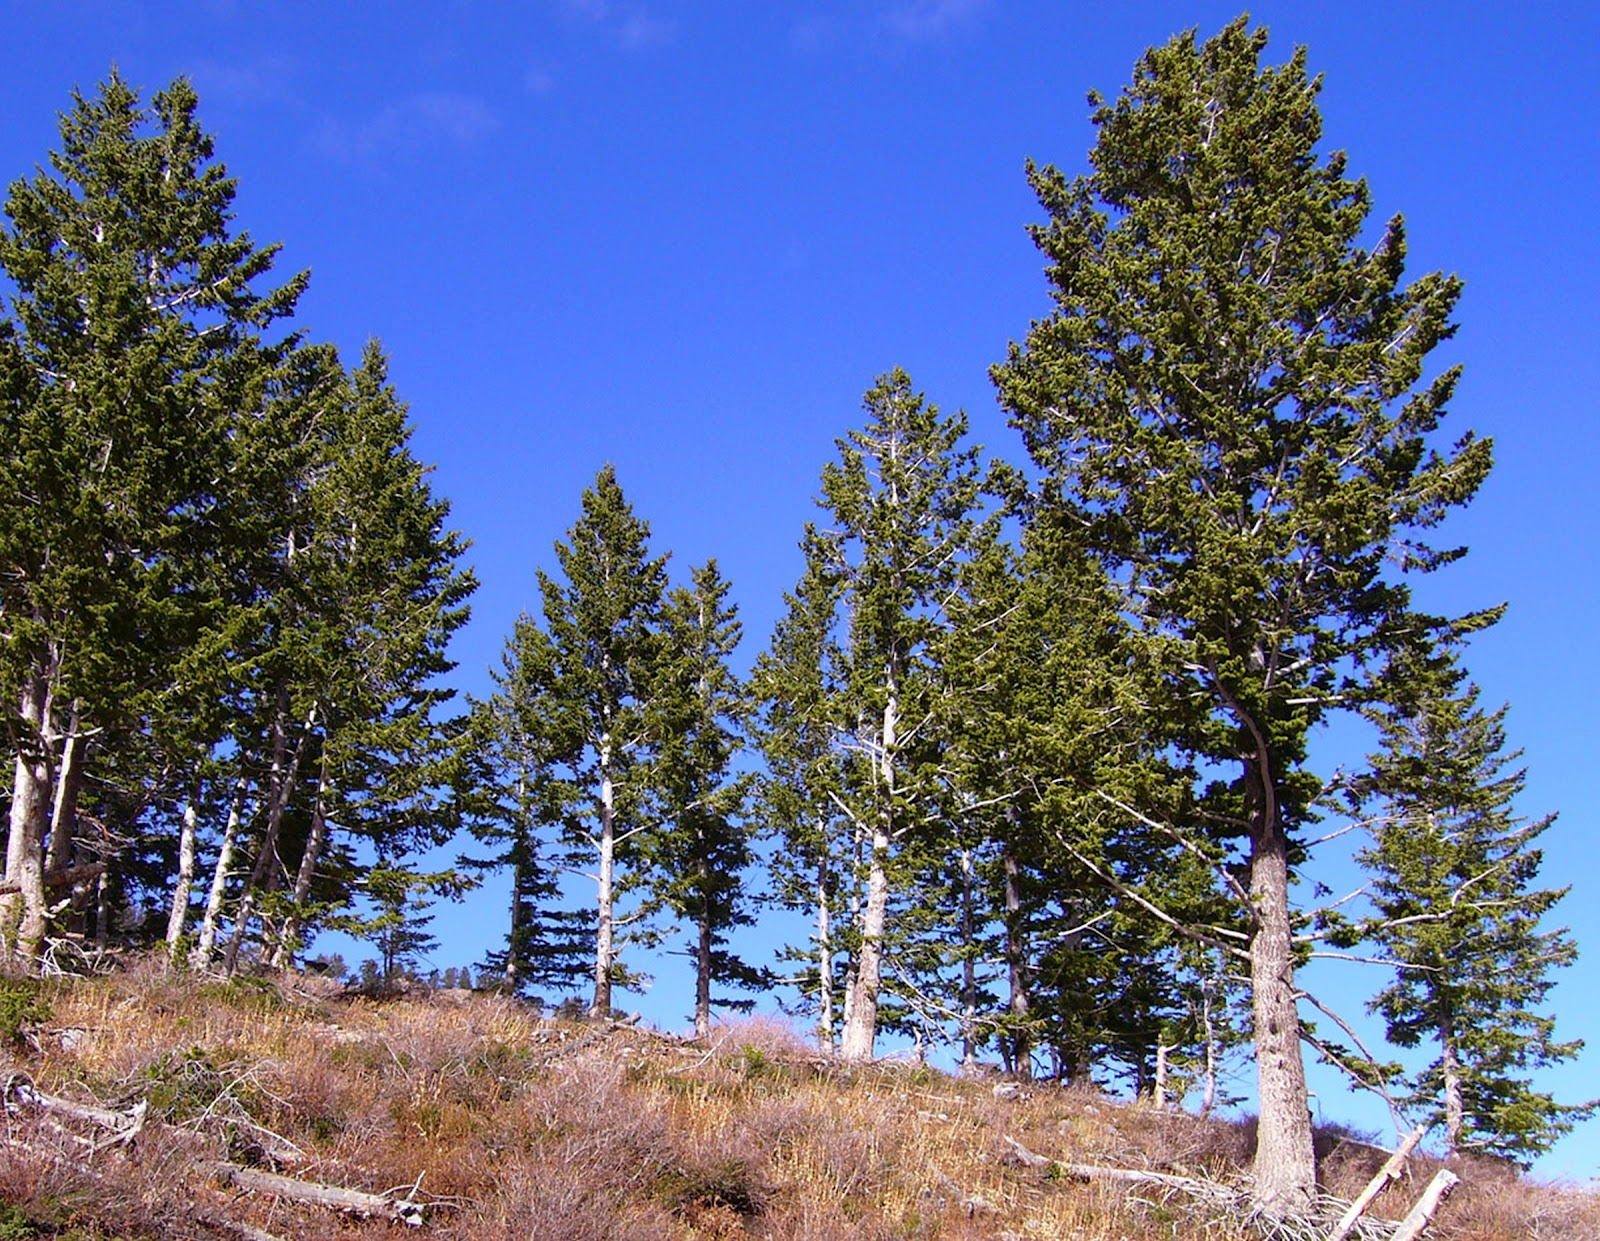 Needleleaf Trees Include Such Familiar As Firs Hemlocks Pines Redwoods And Spruces There Are About 500 Species Of